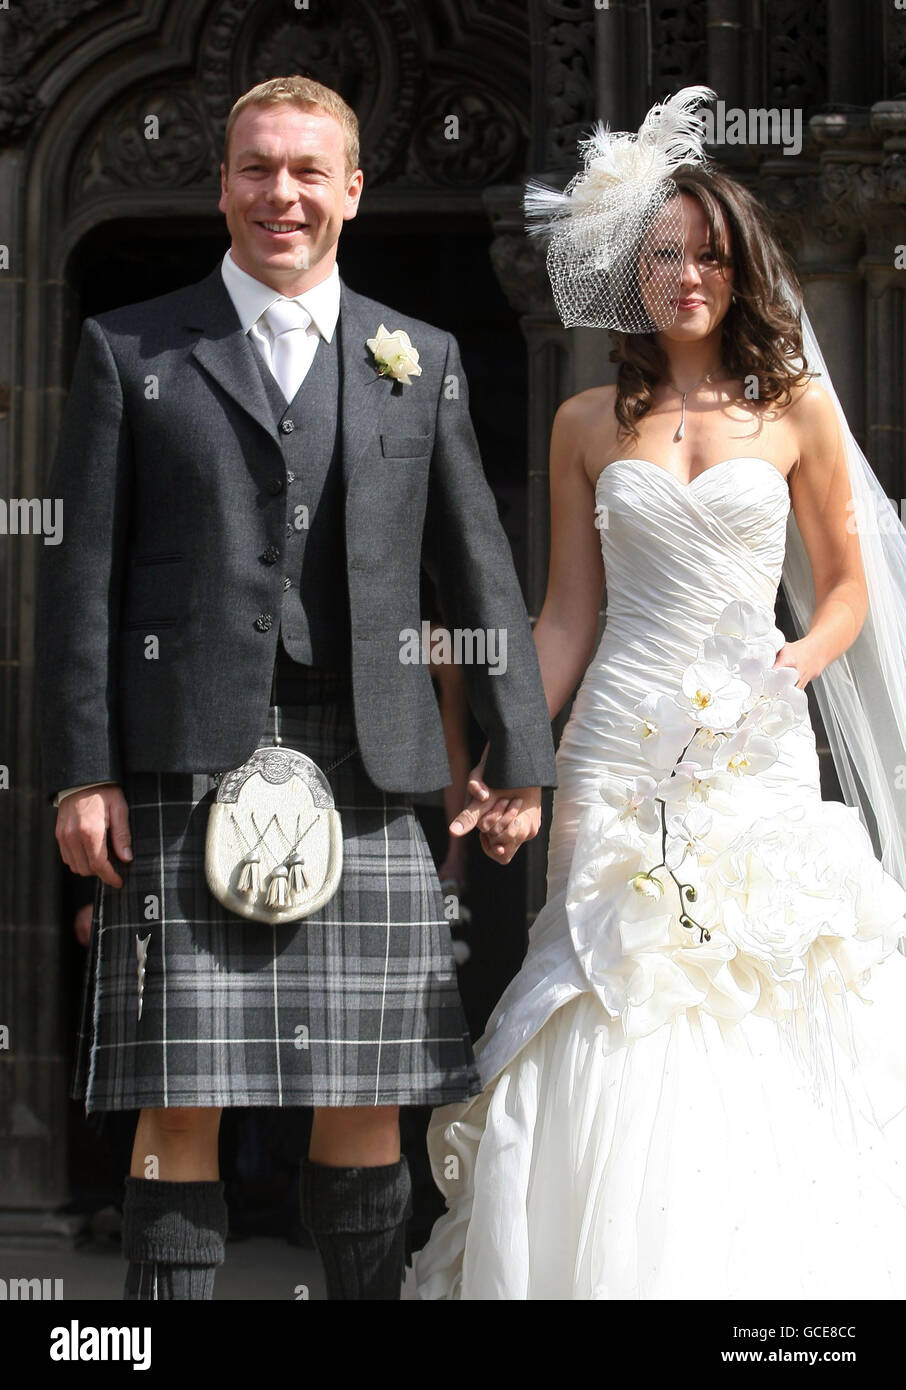 Sir Chris Hoy And Sarah Kemp Depart After Their Wedding At St Giles Stock Photo Alamy